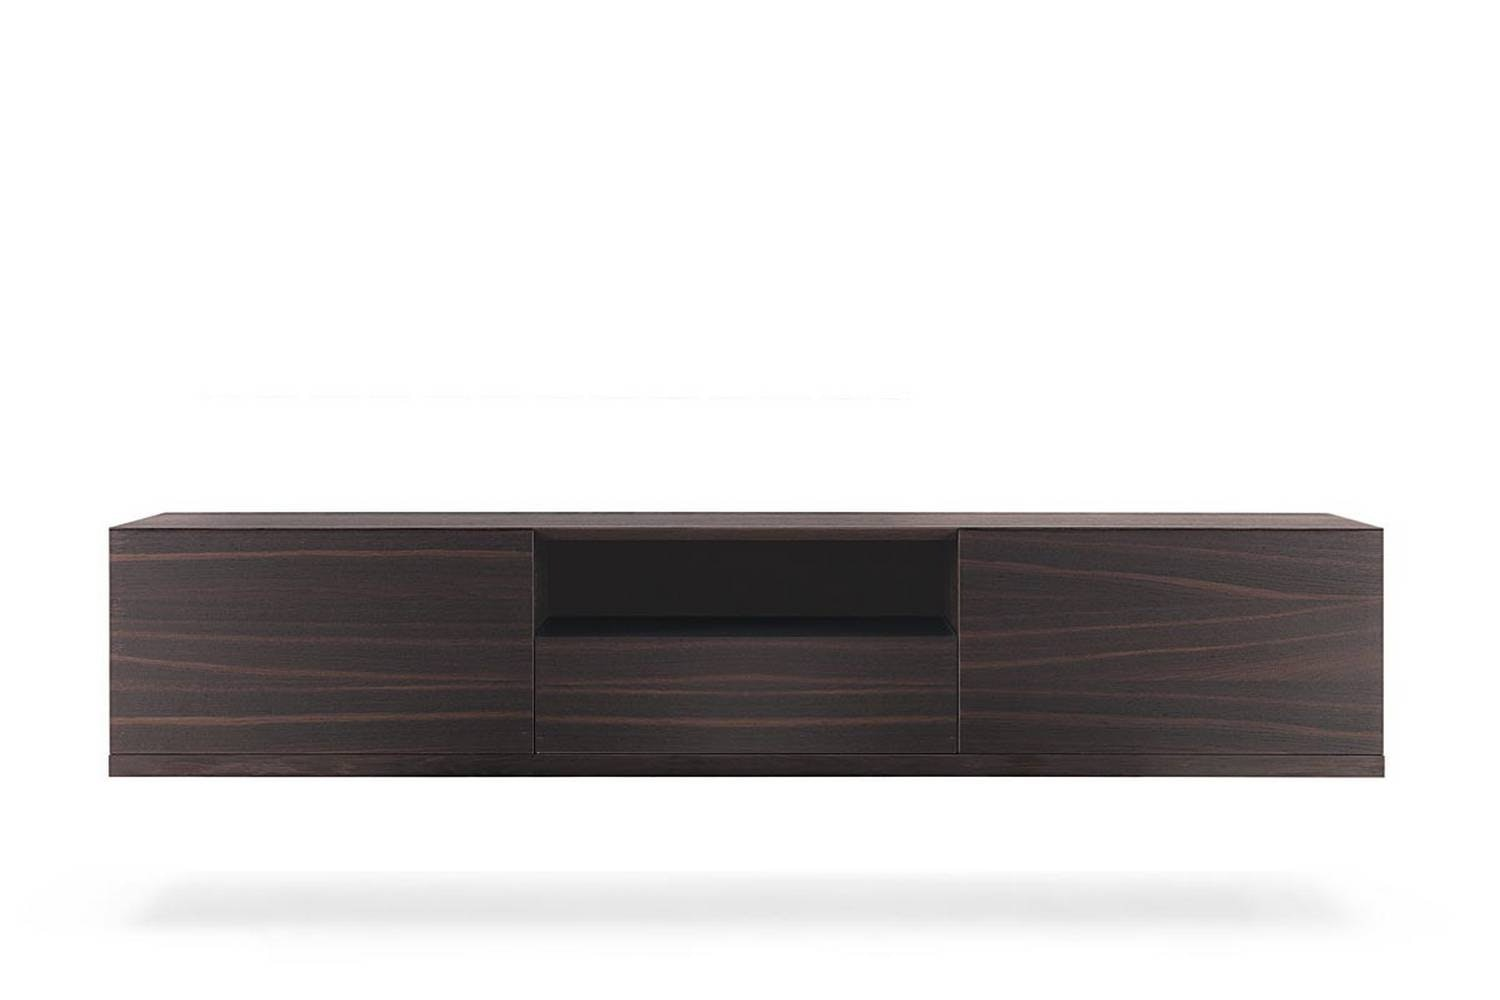 Class Sideboard by Matteo Nunziati for Poliform